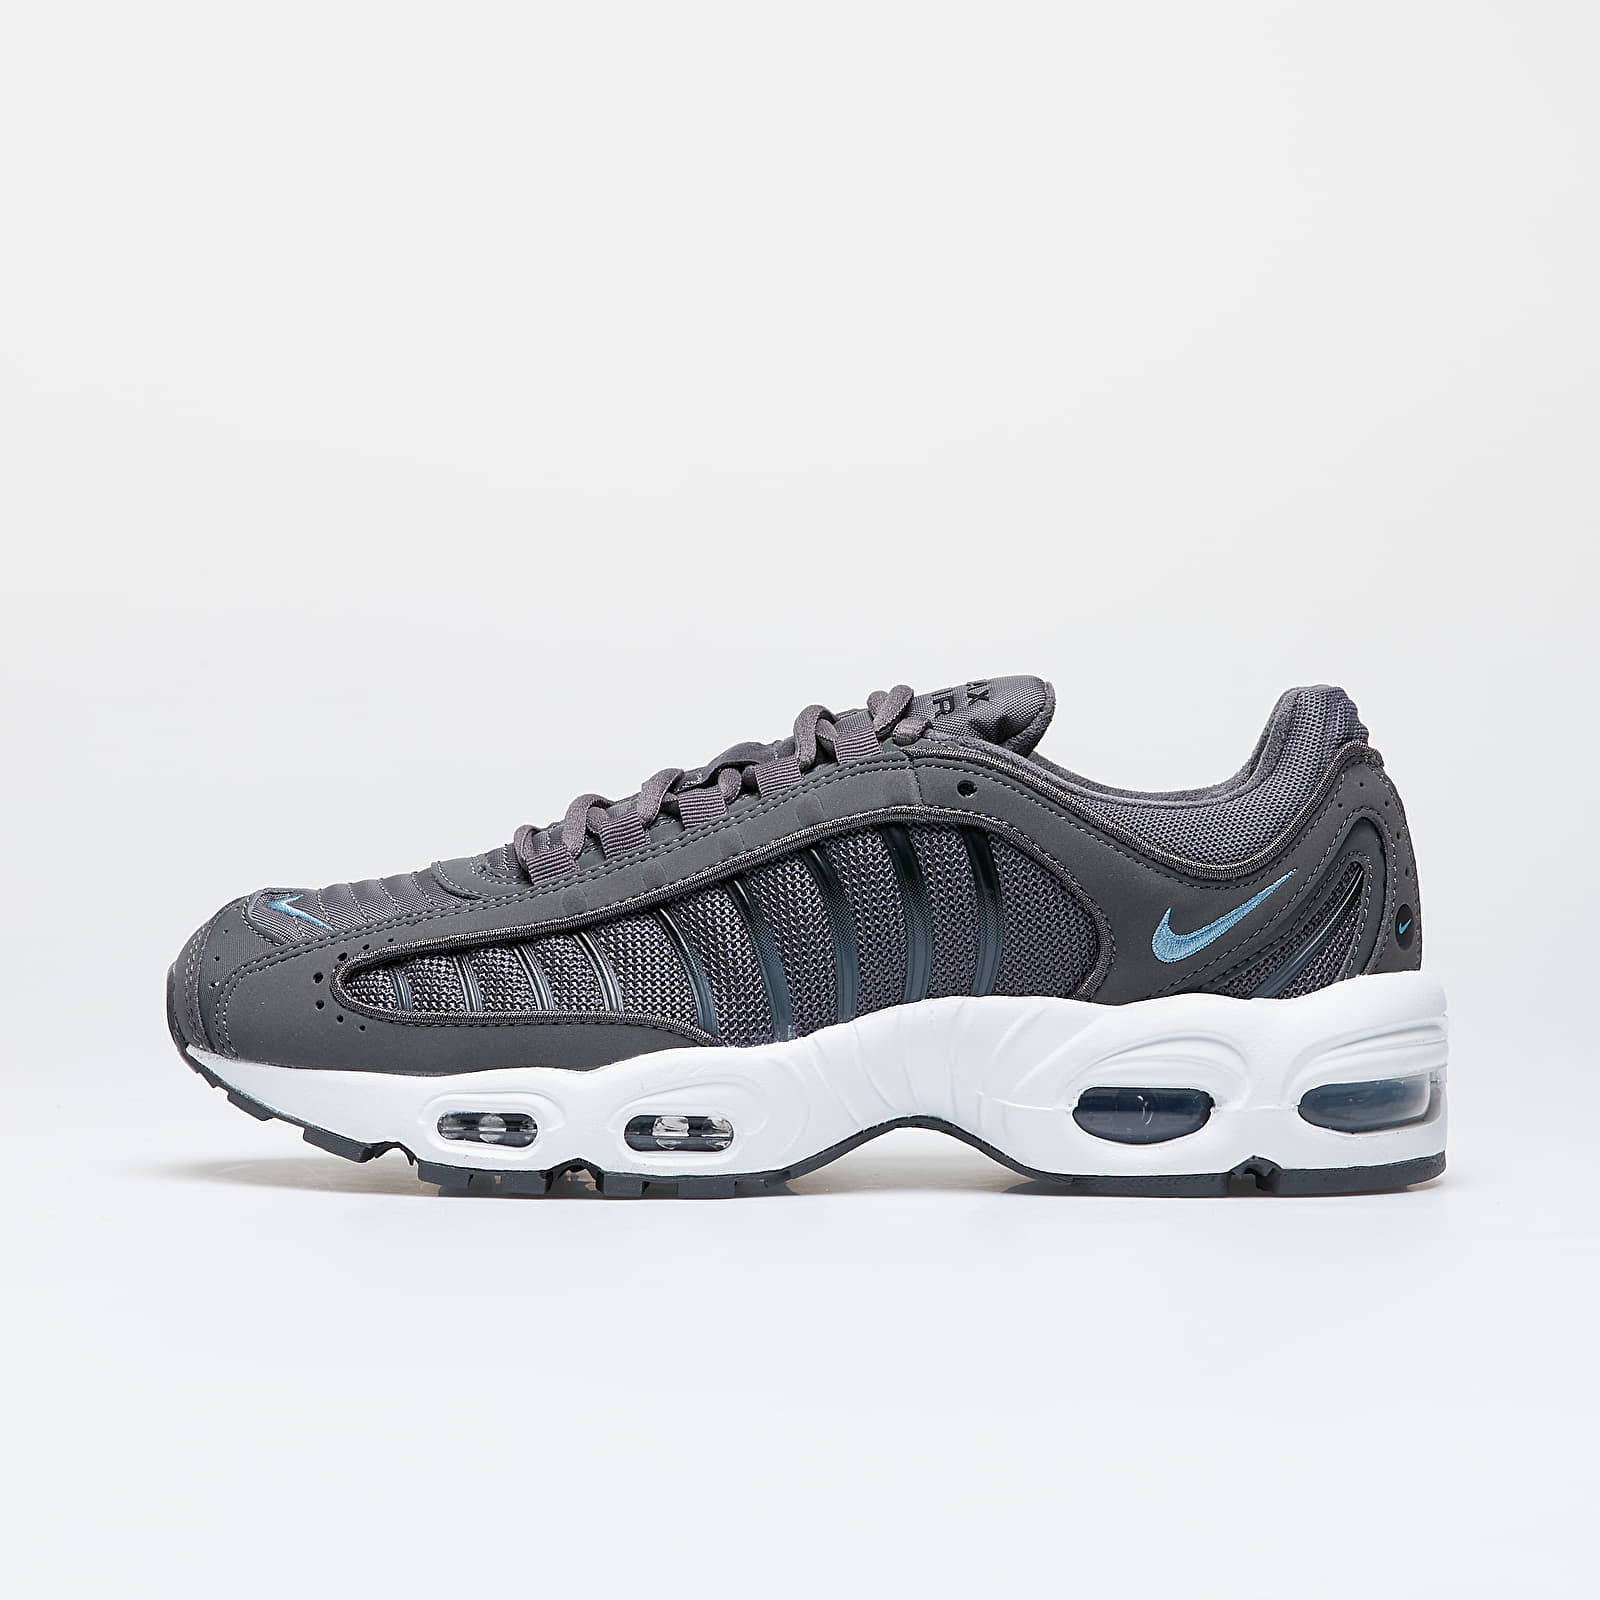 Men's shoes Nike Air Max Tailwind IV Iron Grey/ Cerulean-Black-White